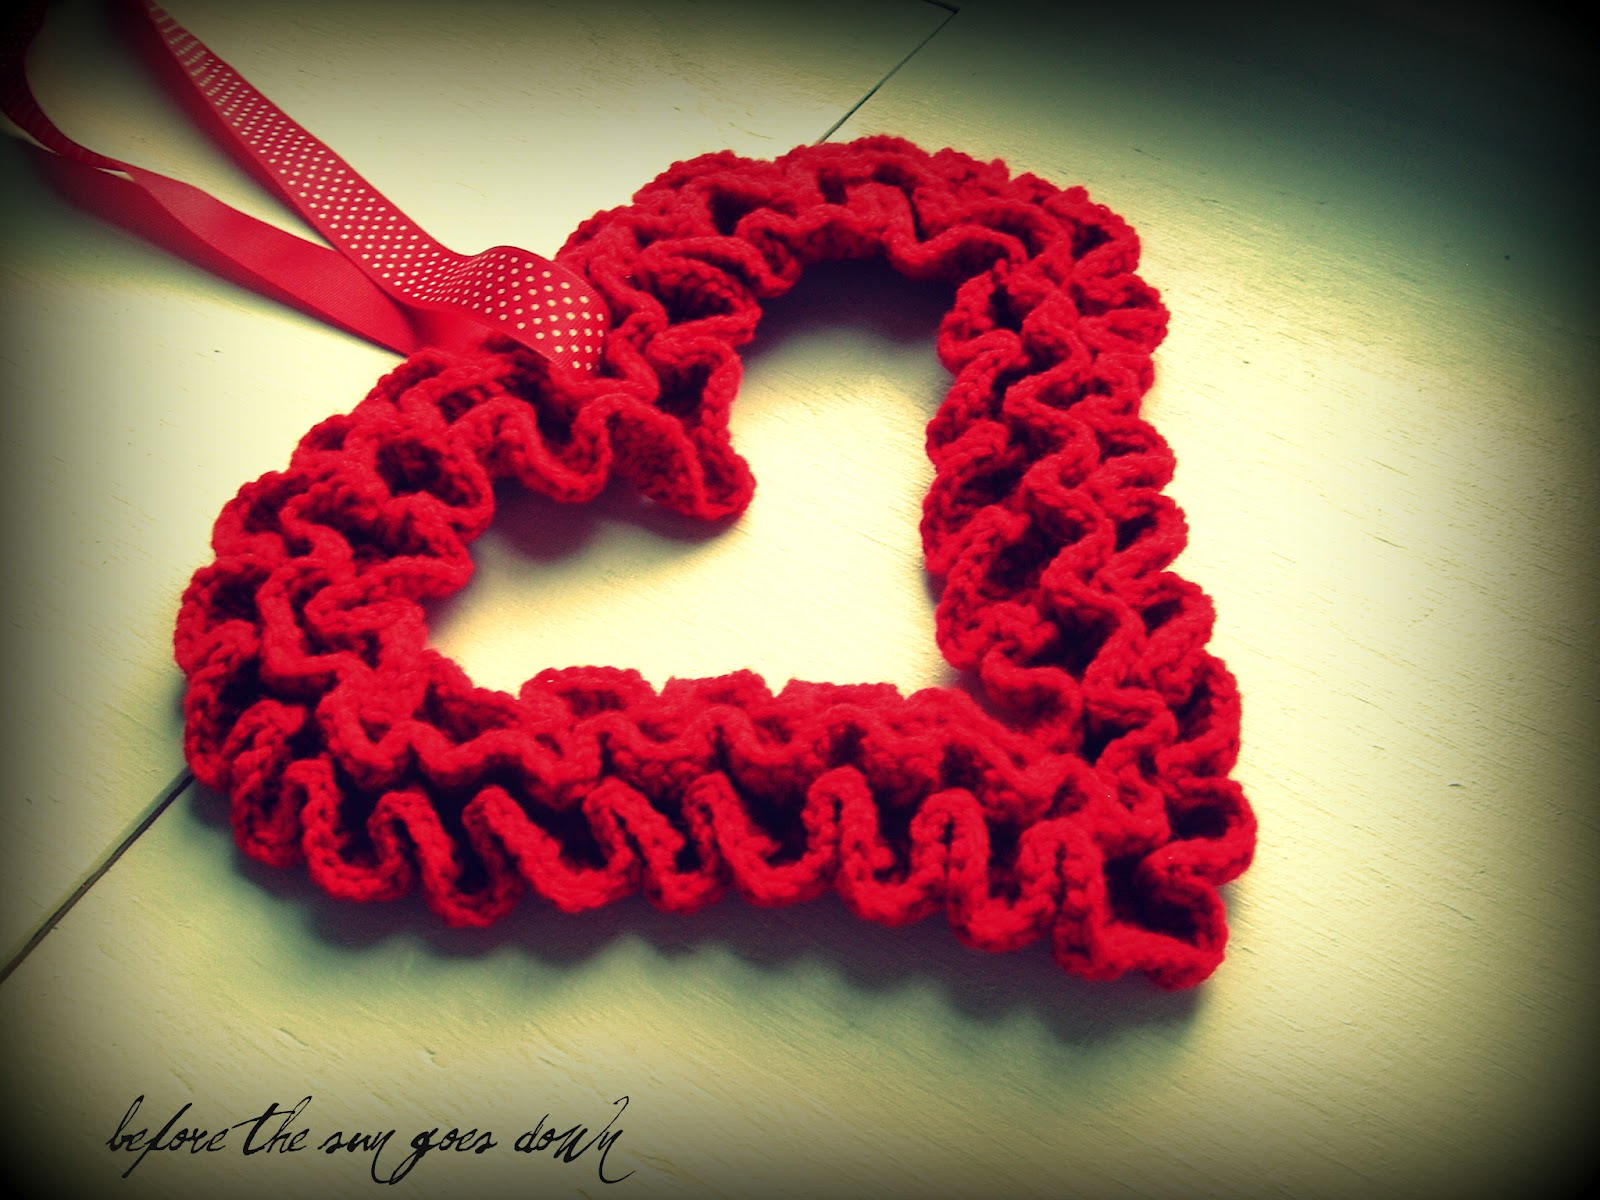 Free Ruffle Yarn Crochet Patterns : Would You Like Yarn With That?: Crochet Ruffle Valentine ...